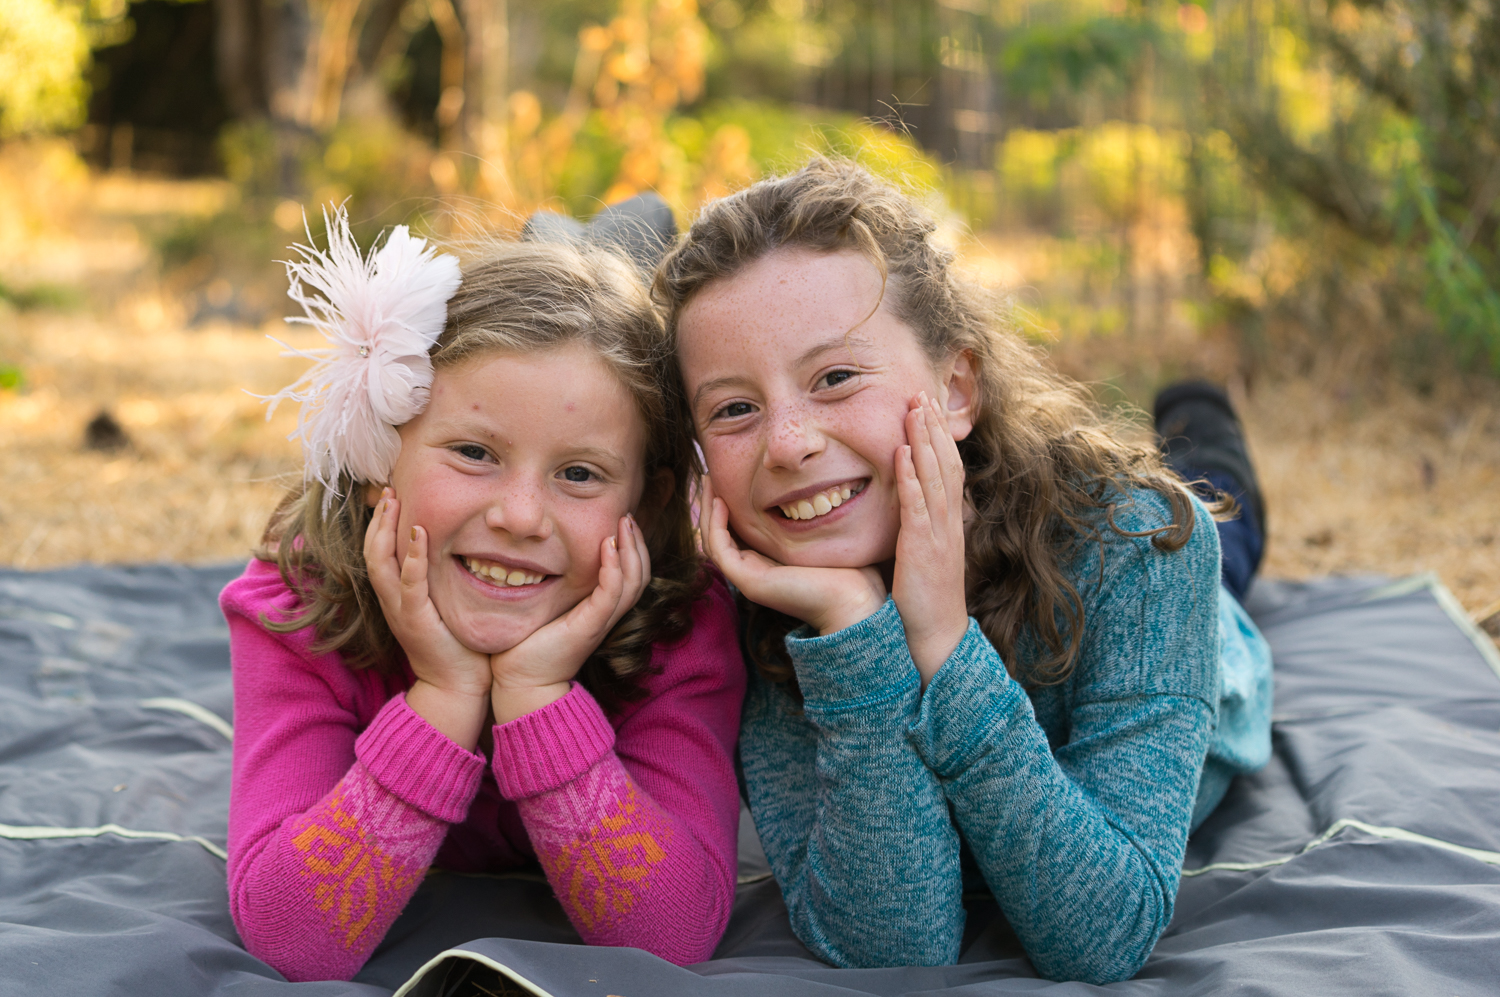 sisters smiling in the park-San Ramon natural light photographer